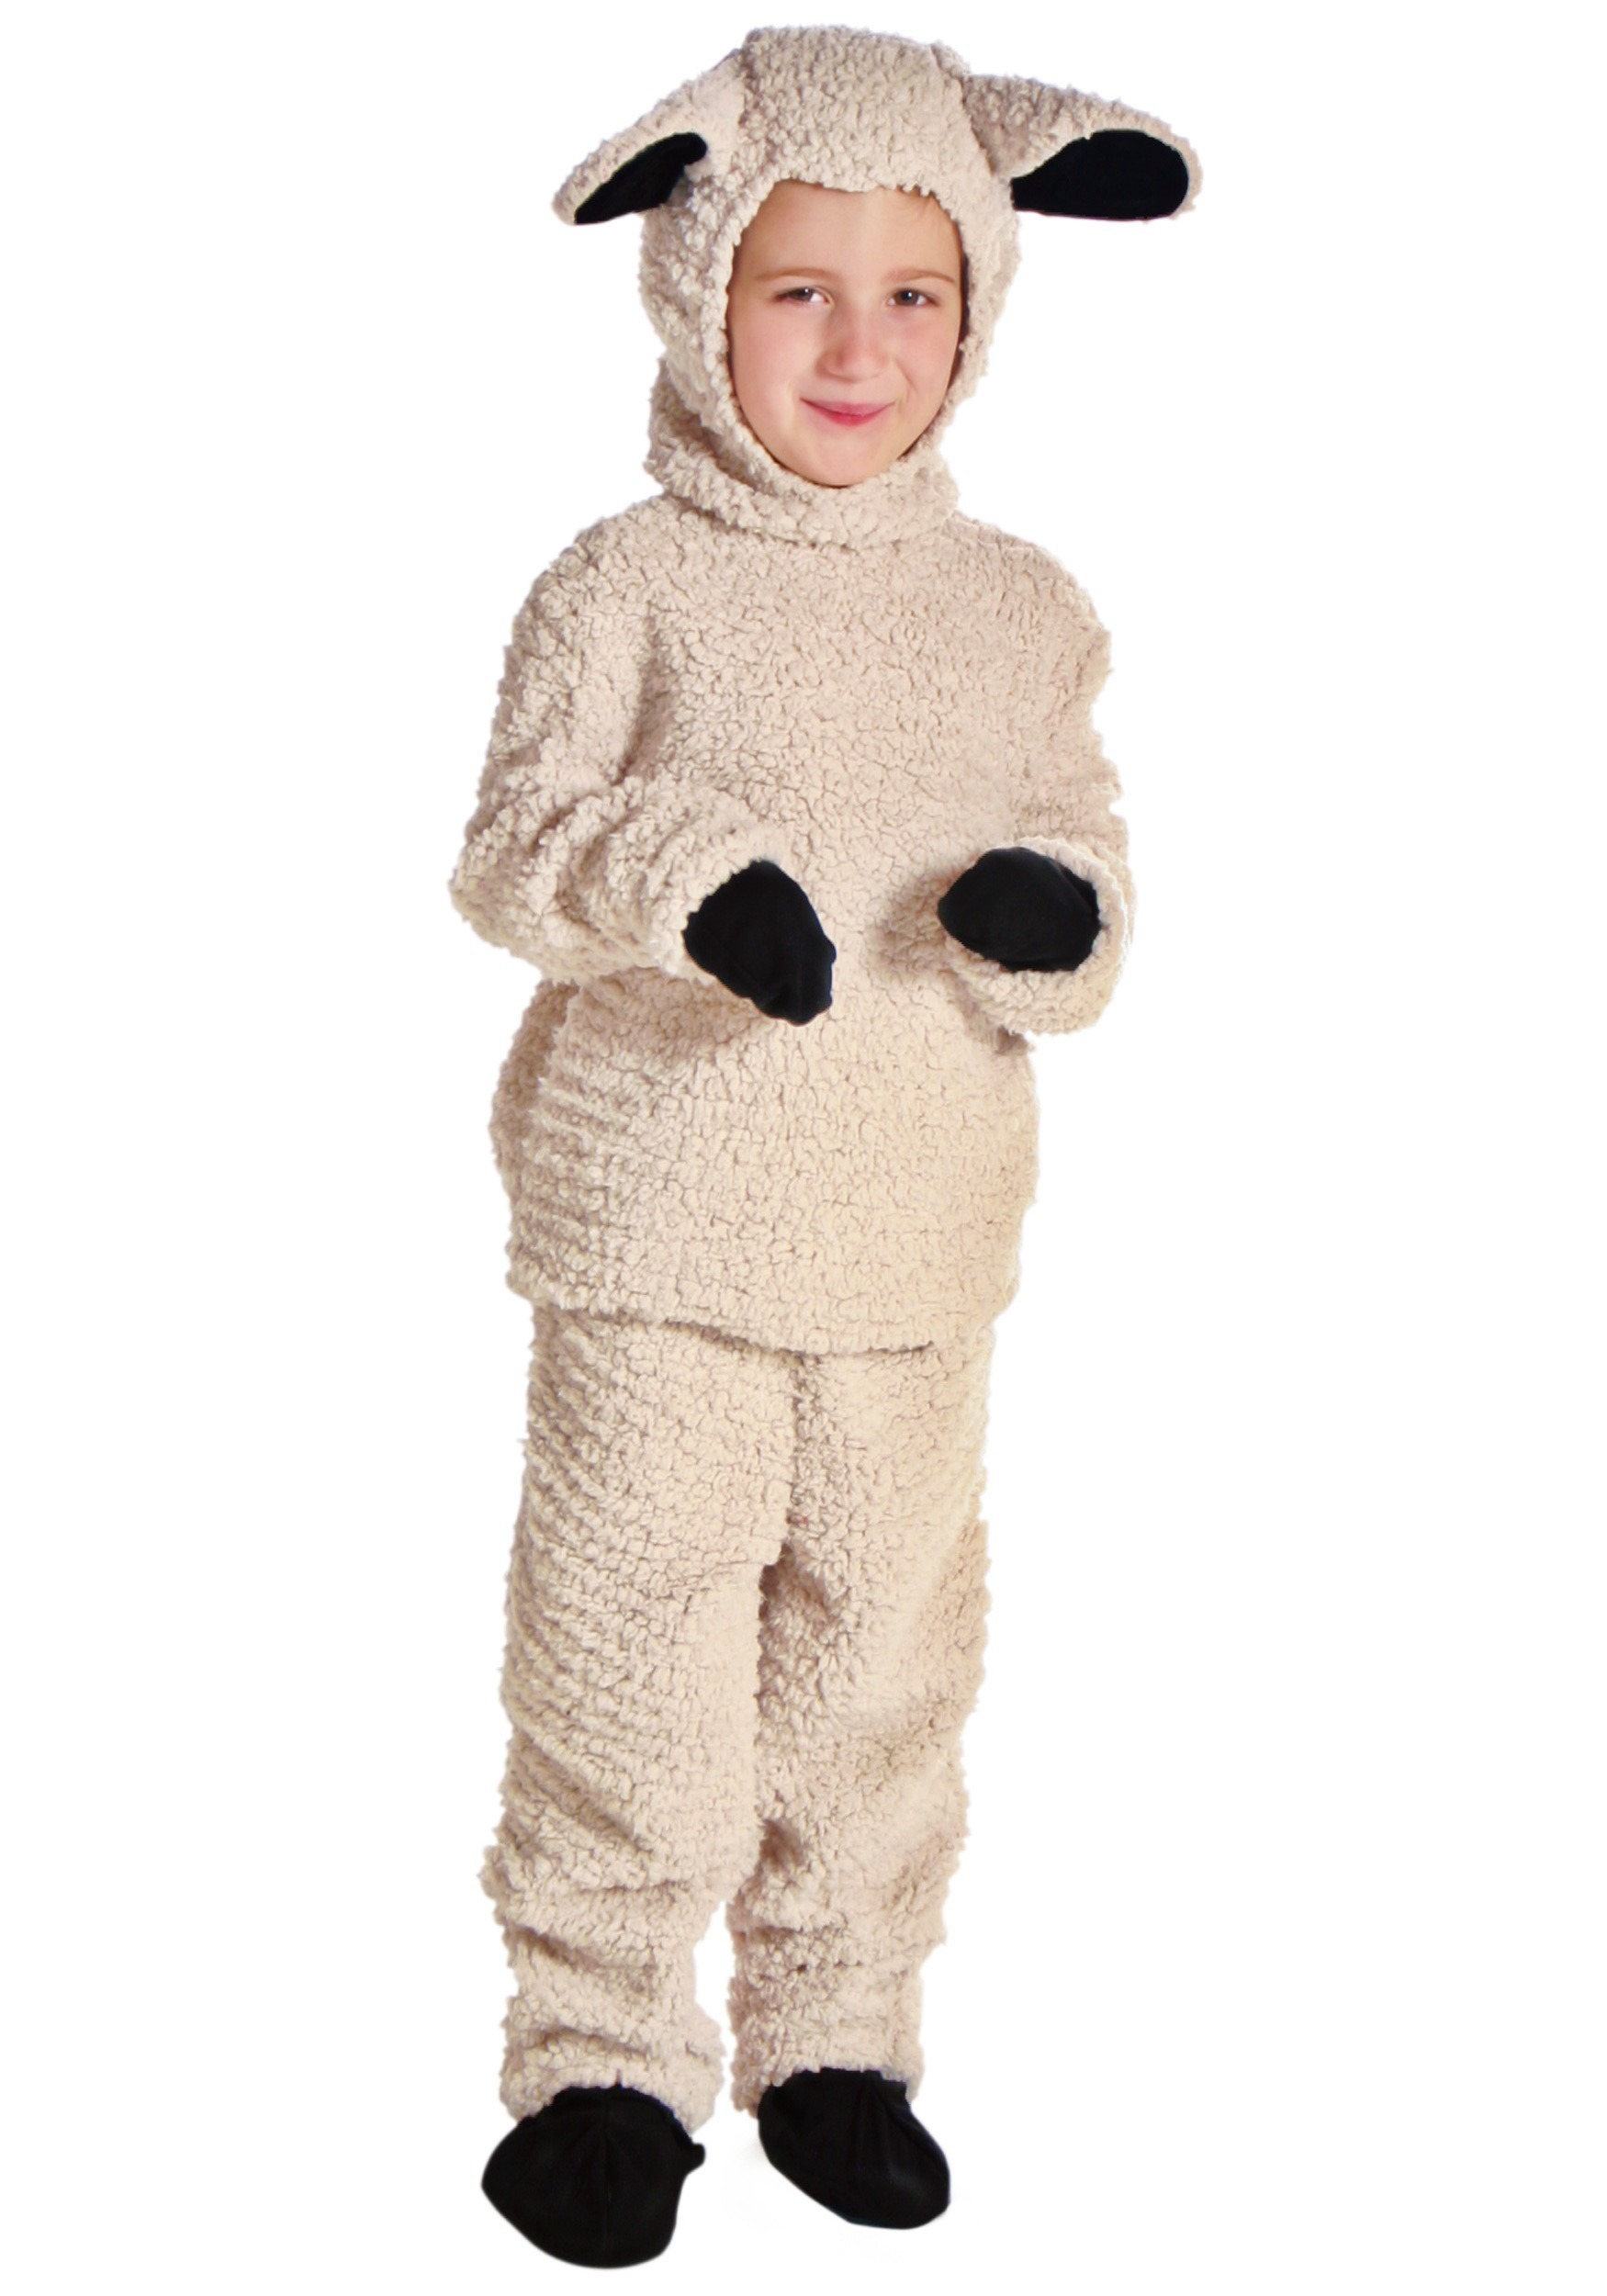 Woolly Sheep Costume for Kids   Exclusive   Made By Us Costume